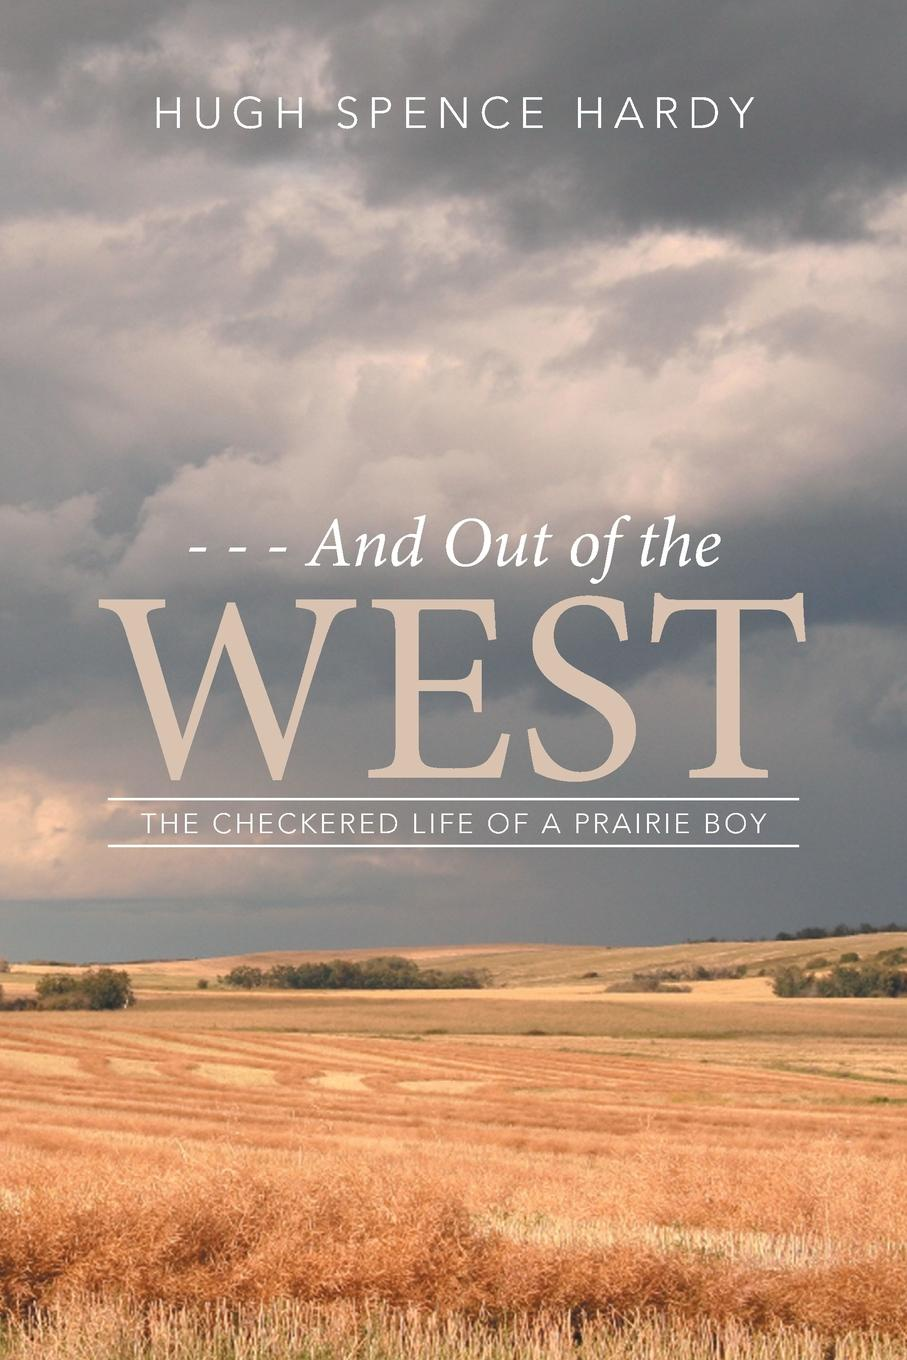 цена на Hugh Spence Hardy - - - And Out of the WEST. The Checkered Life of a Prairie Boy